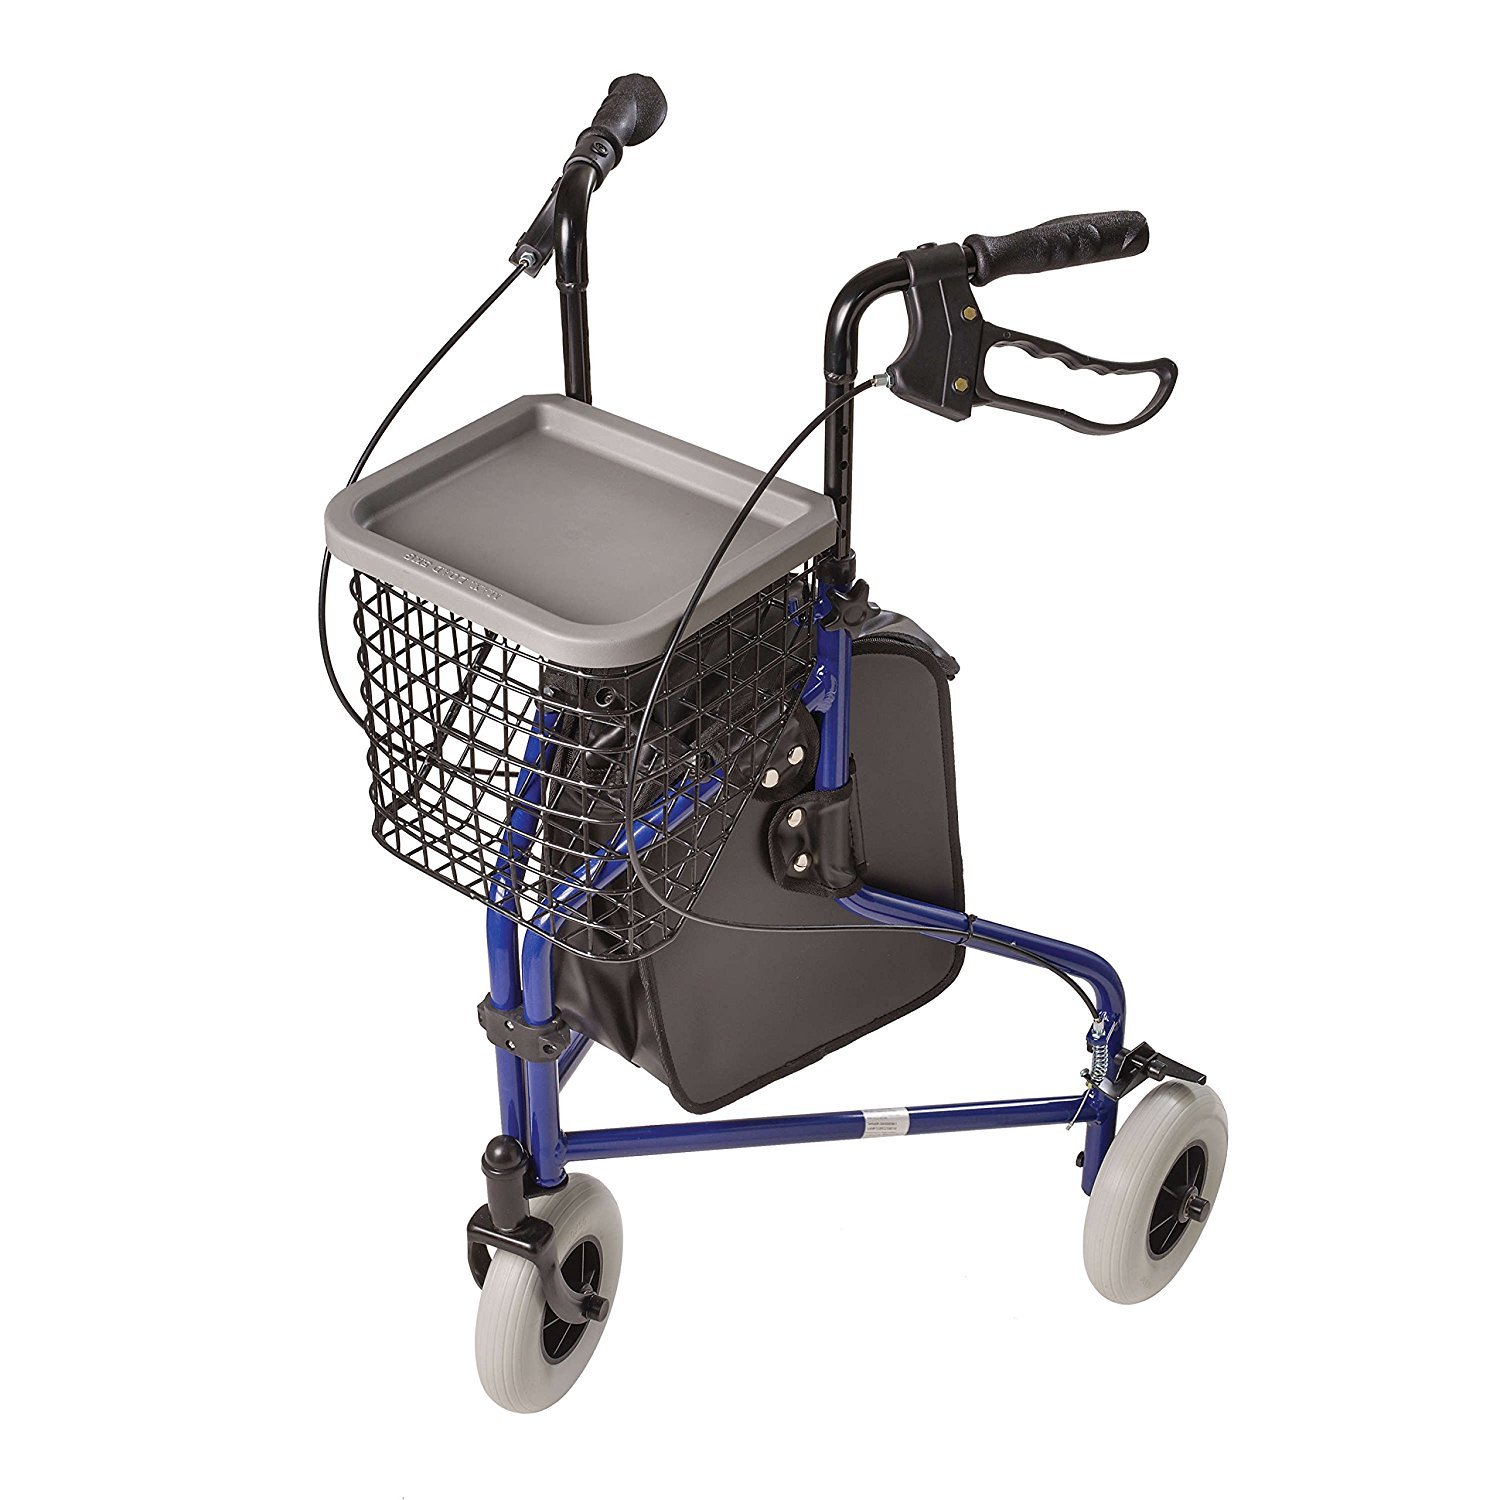 Caremax Mobility Aid Compact Rolling Walker - Rollator - (Blue) with Storage Bag and Basket by CareMax